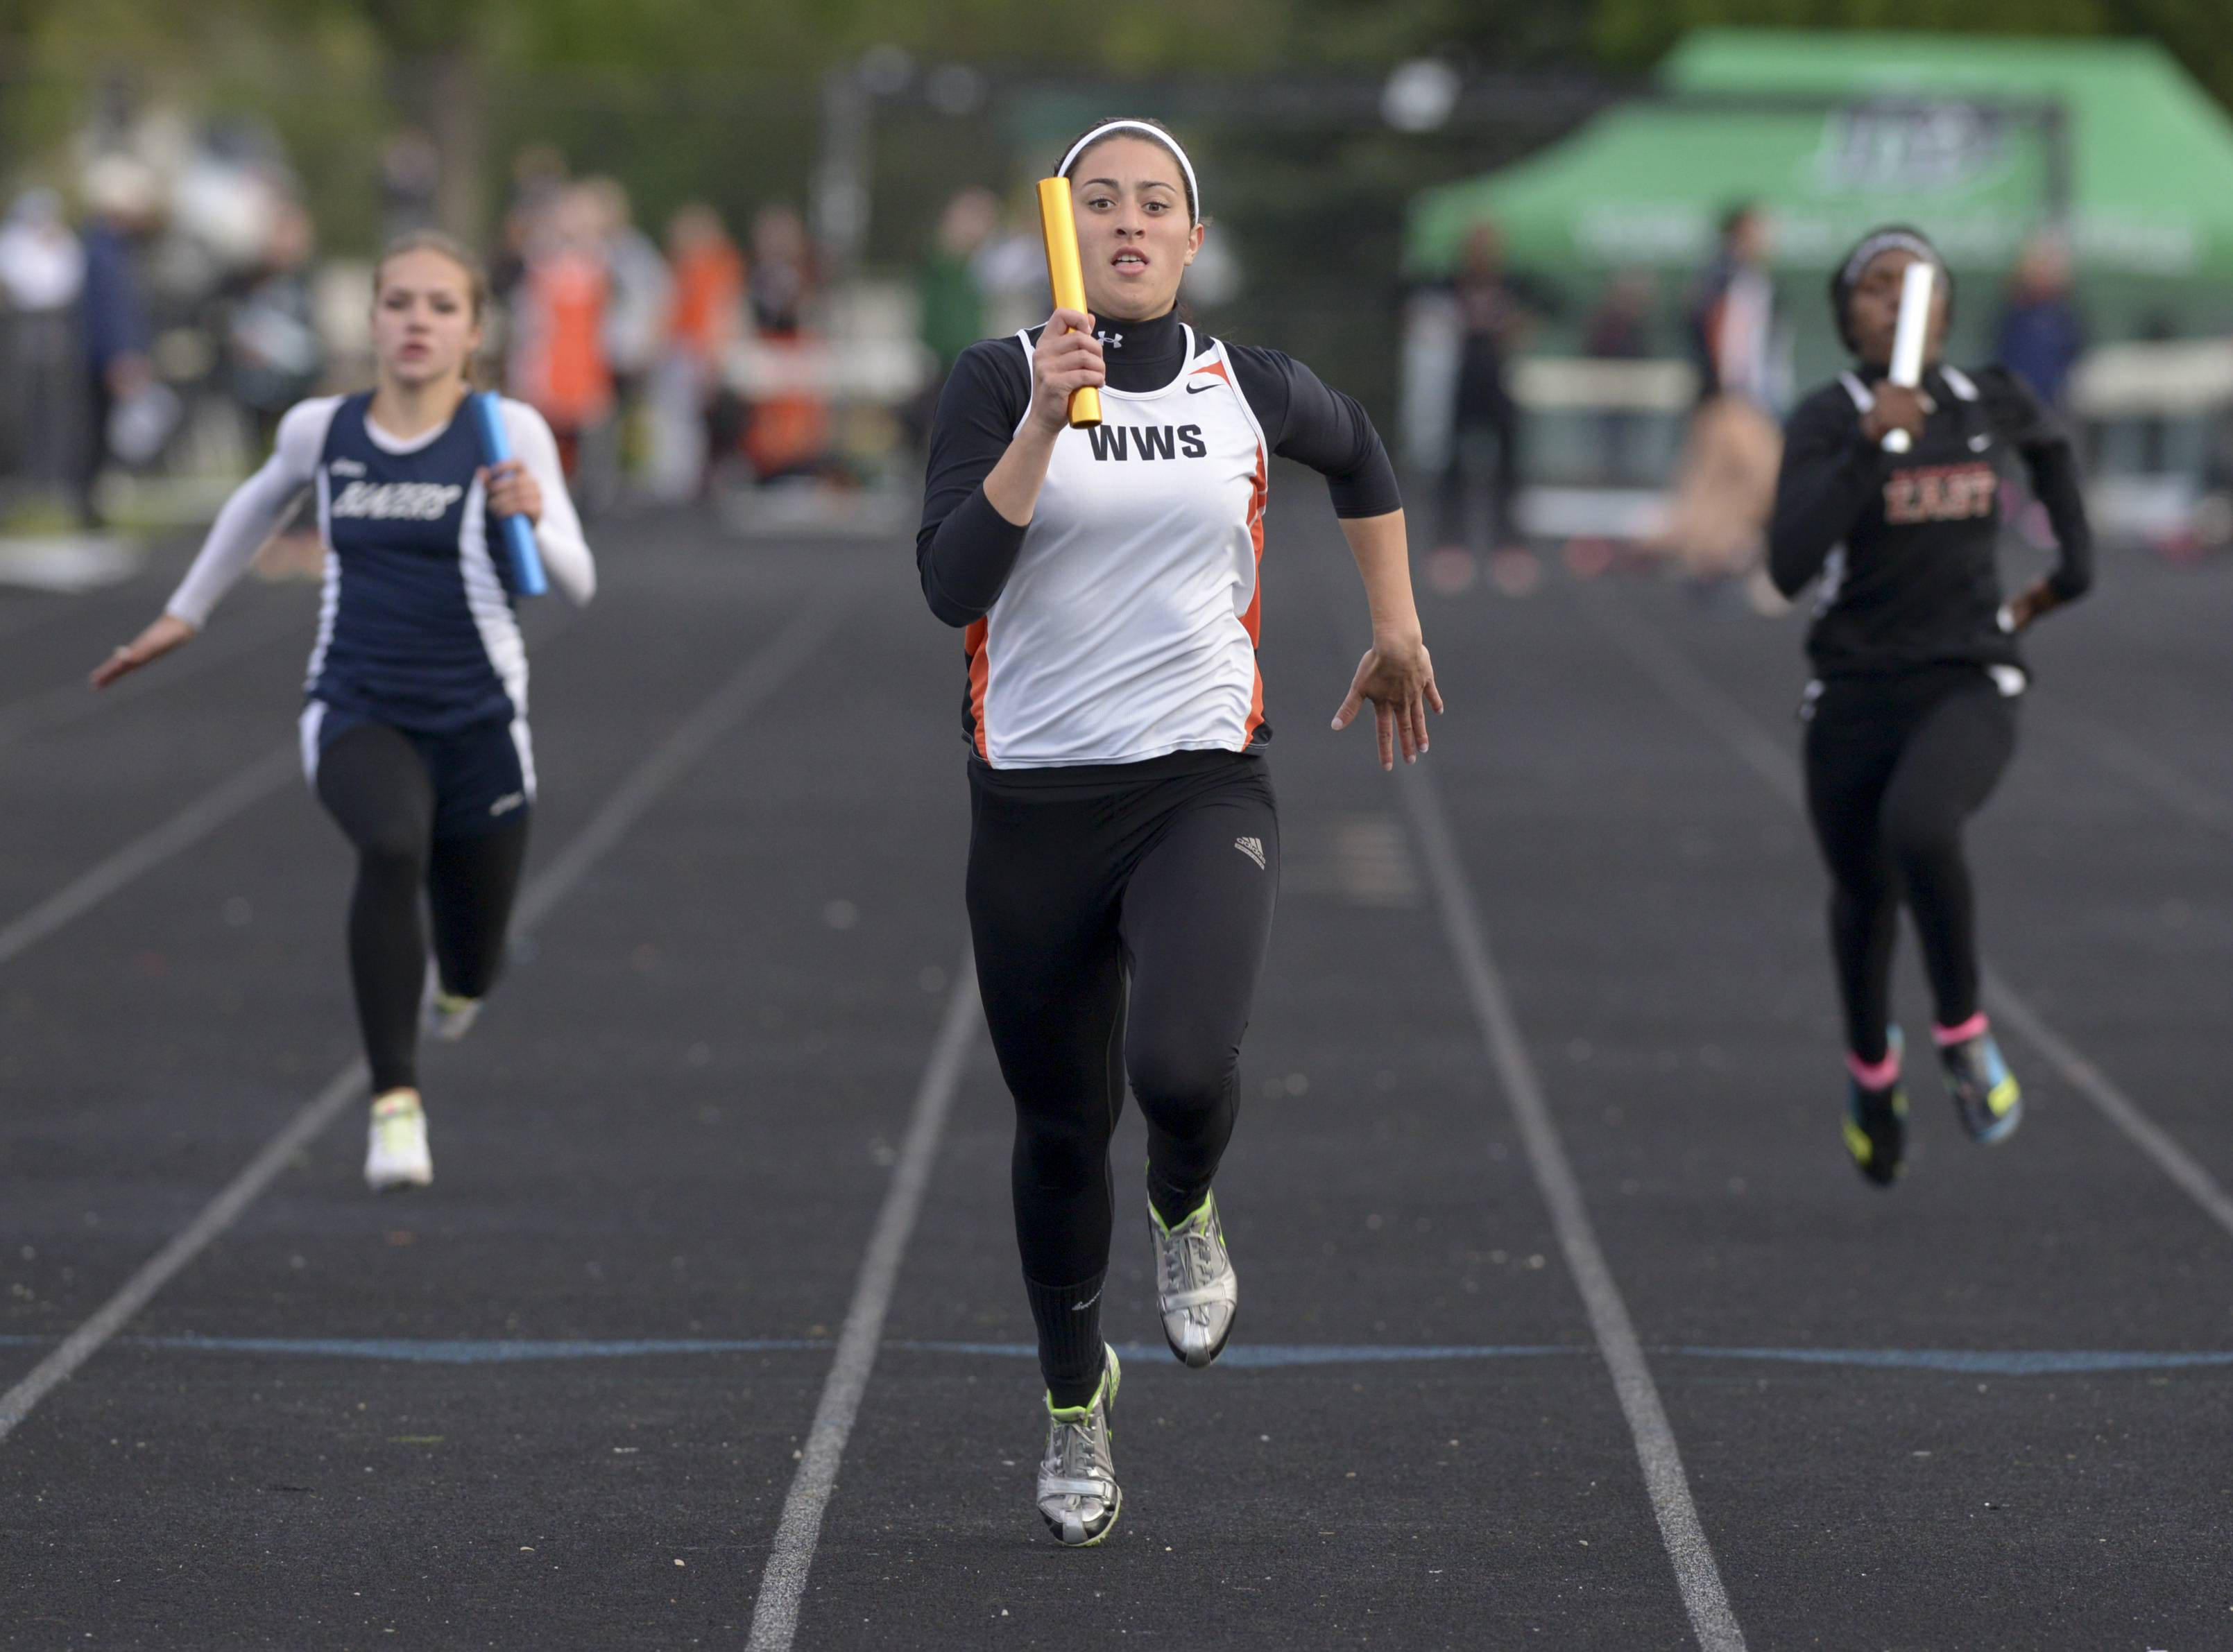 Maggie Dansdill of Wheaton Warrenville South runs the 400 m relay during the Wheaton Warrenville South girls track sectional.